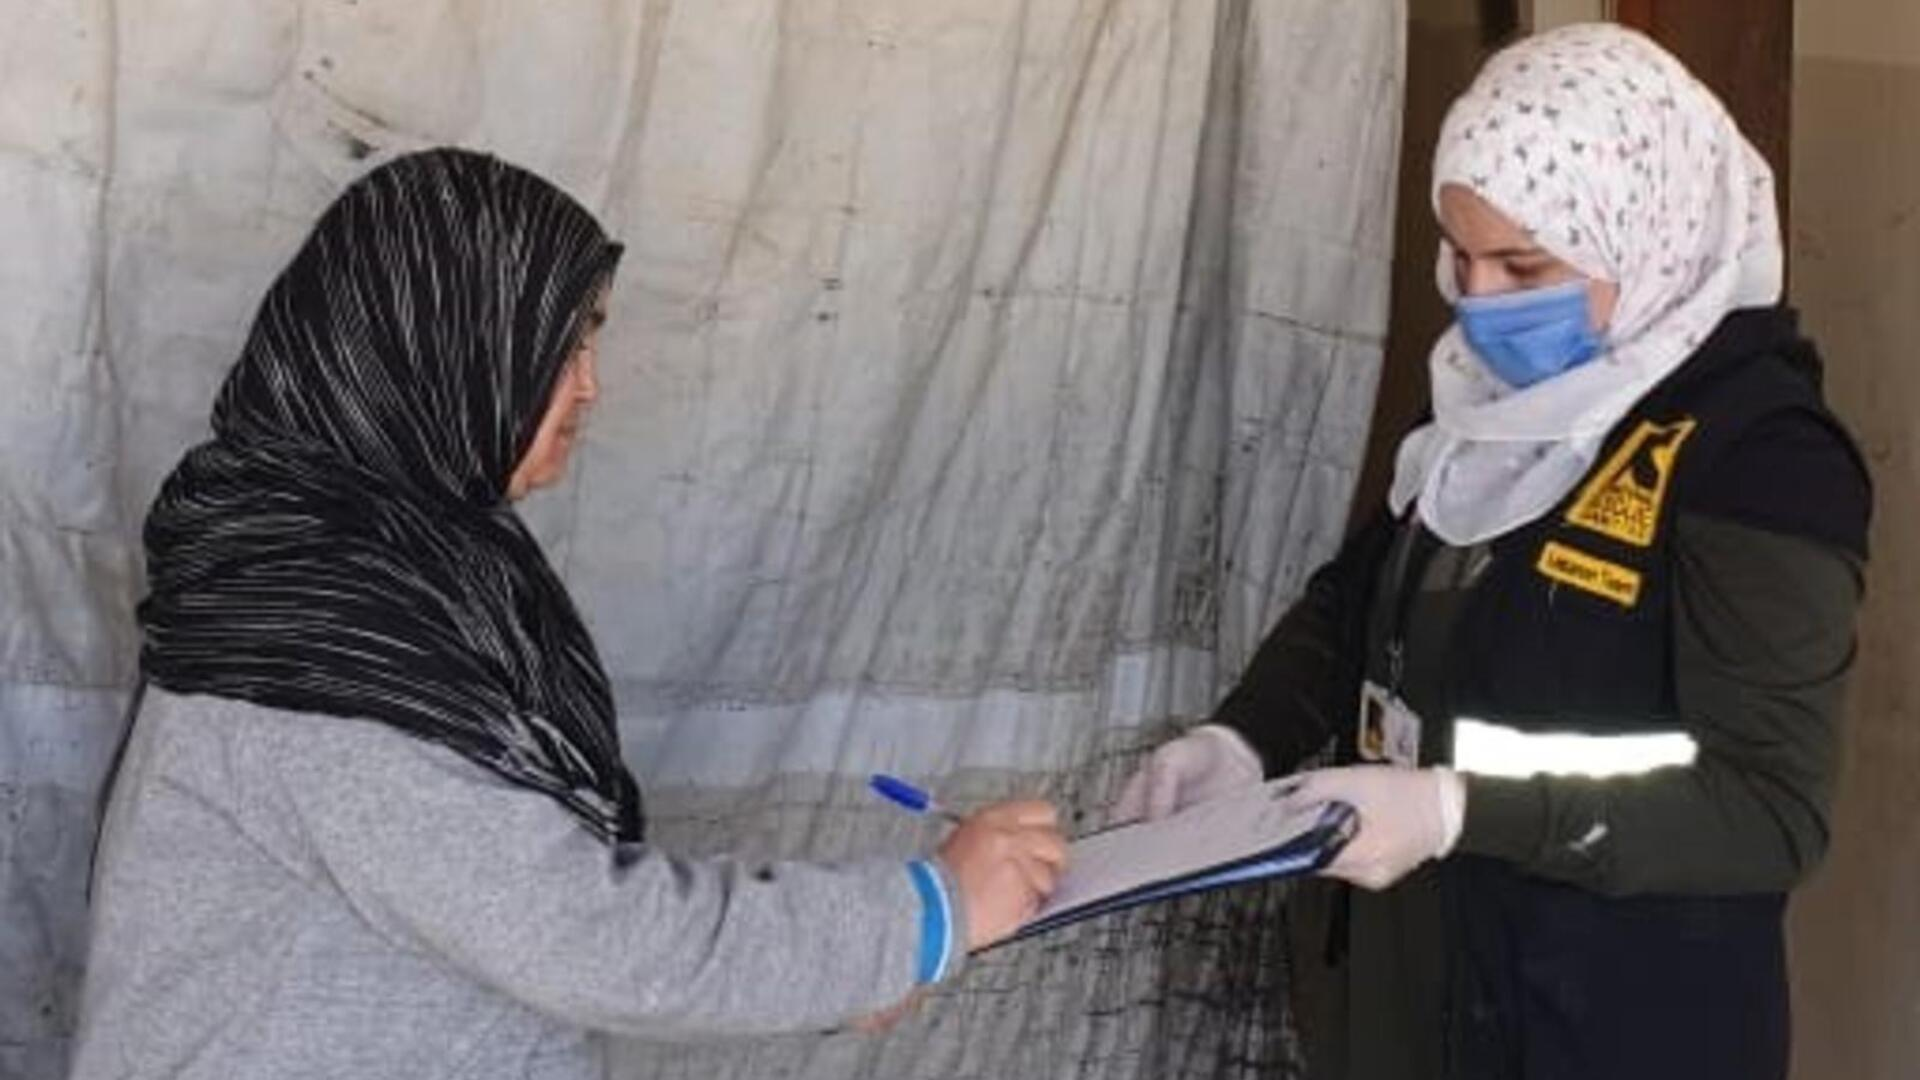 A Syrian refugee woman in Labanon signs a form to get cash assistance presented by an IRC staff member wearing PPE.